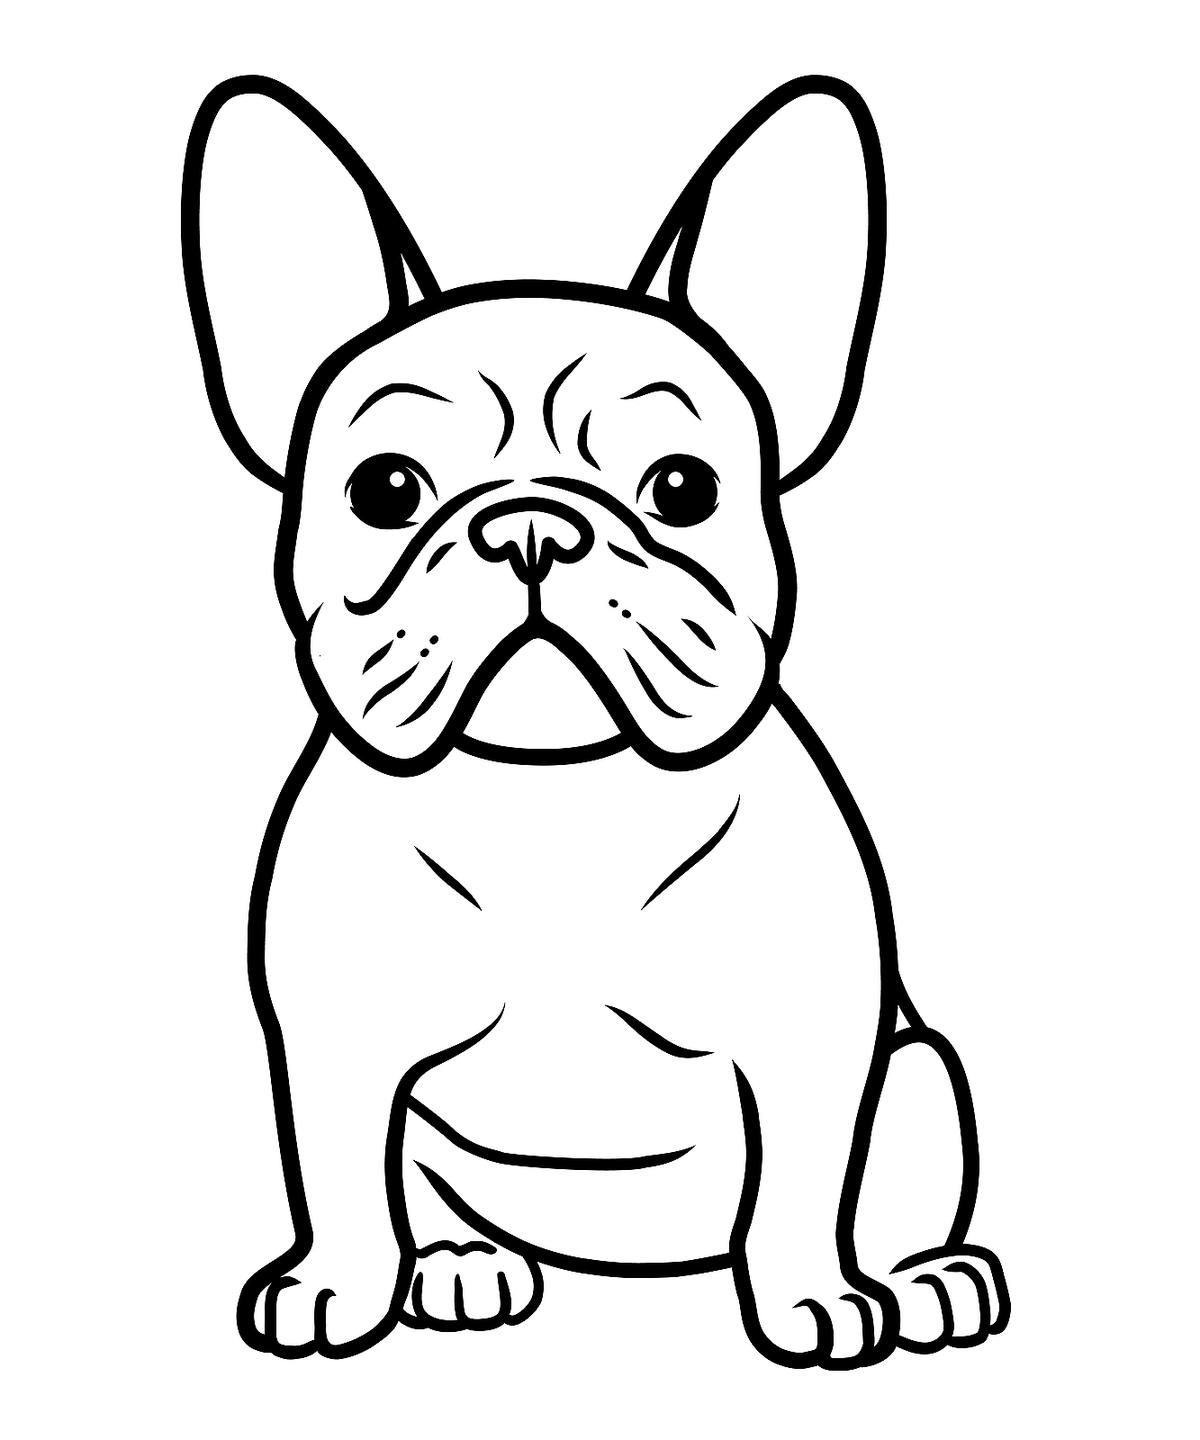 dogs coloring pictures pug dog coloring page coloring home pictures dogs coloring